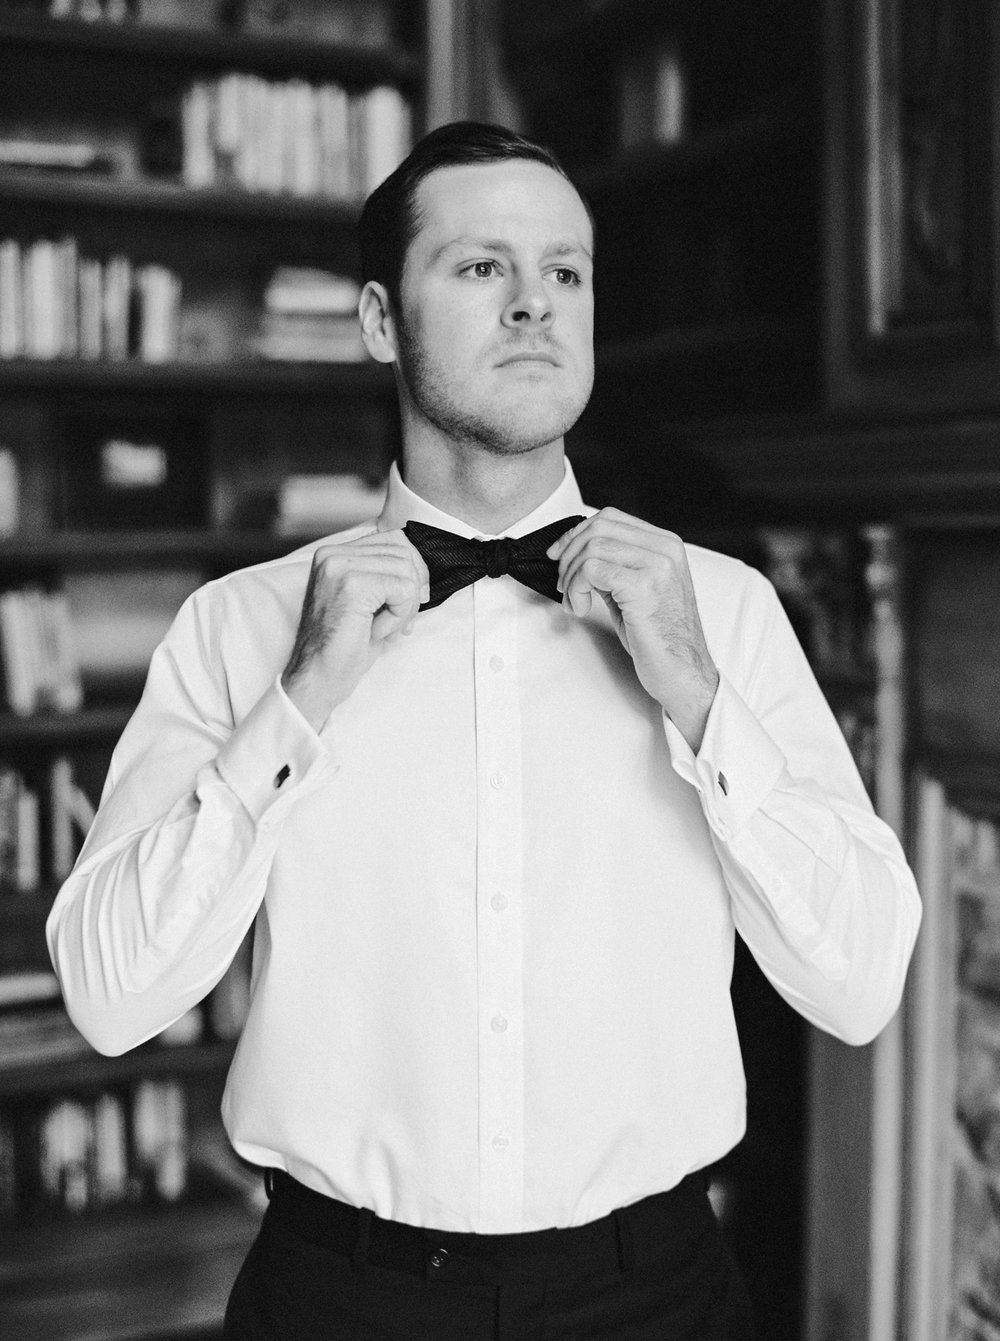 Calgary wedding photographers | georgia wedding photographers | fine art film | Justine Milton Photography | wedding details | georgia wedding | groom getting ready | bowtie